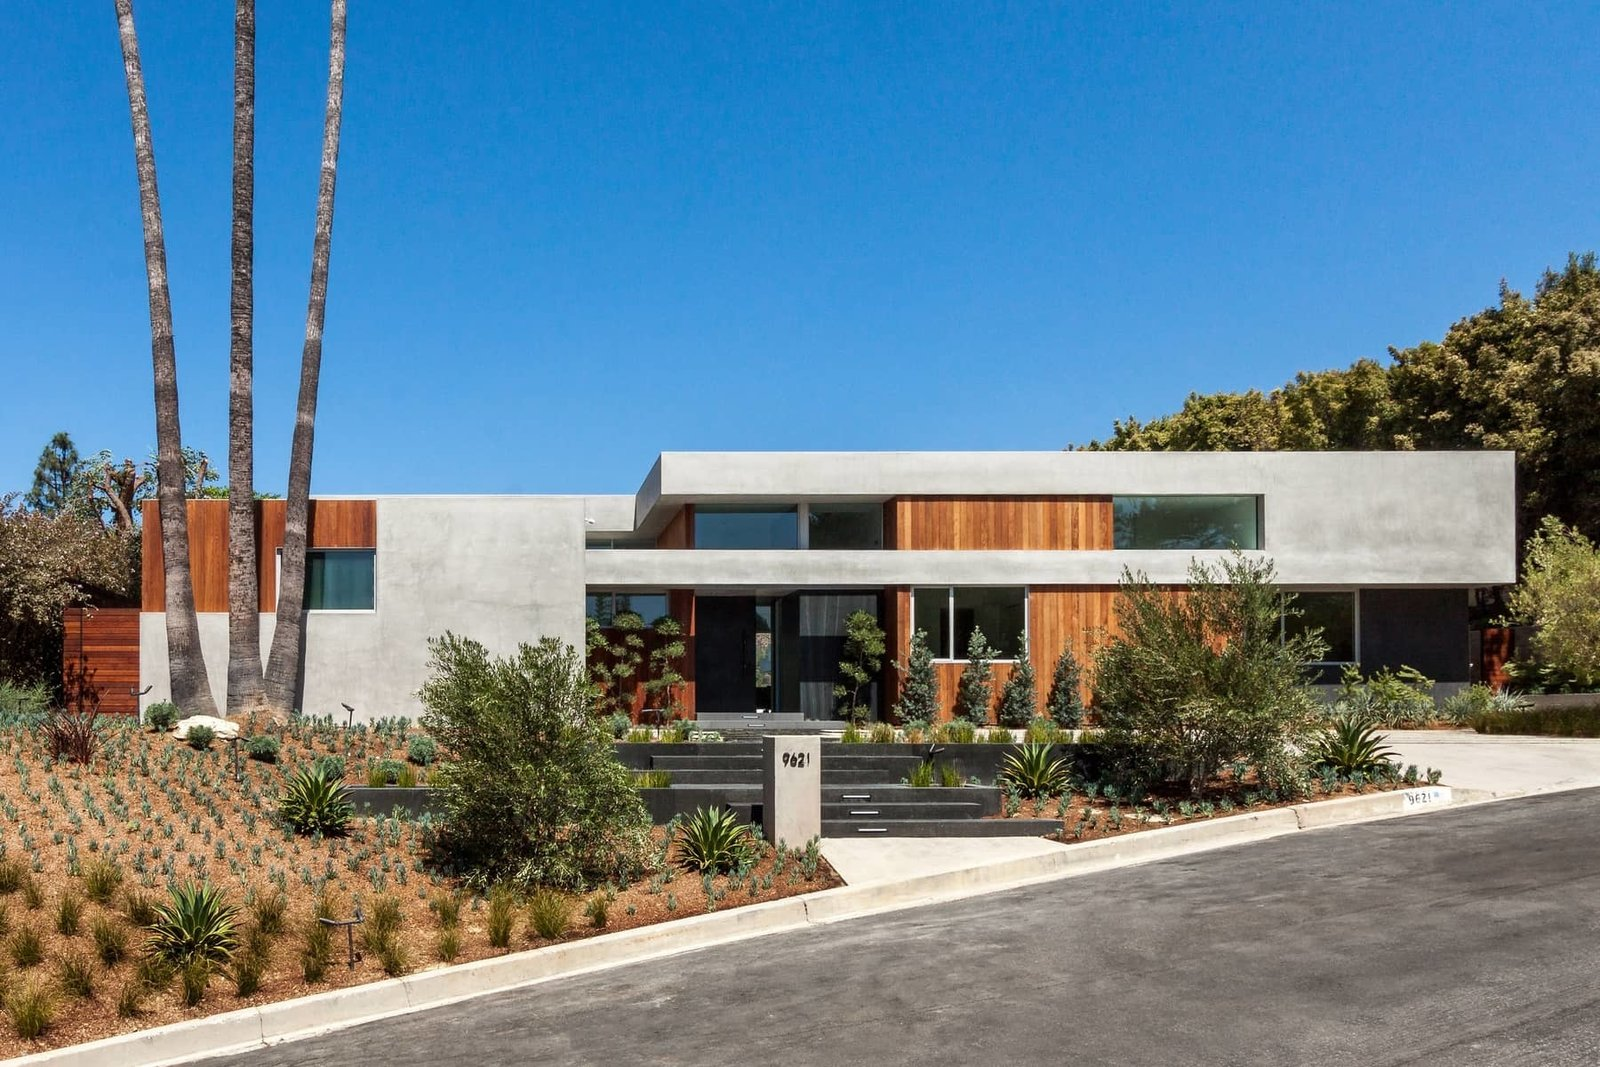 A Celeb-Worthy Home in Beverly Hills Asks $6.75M